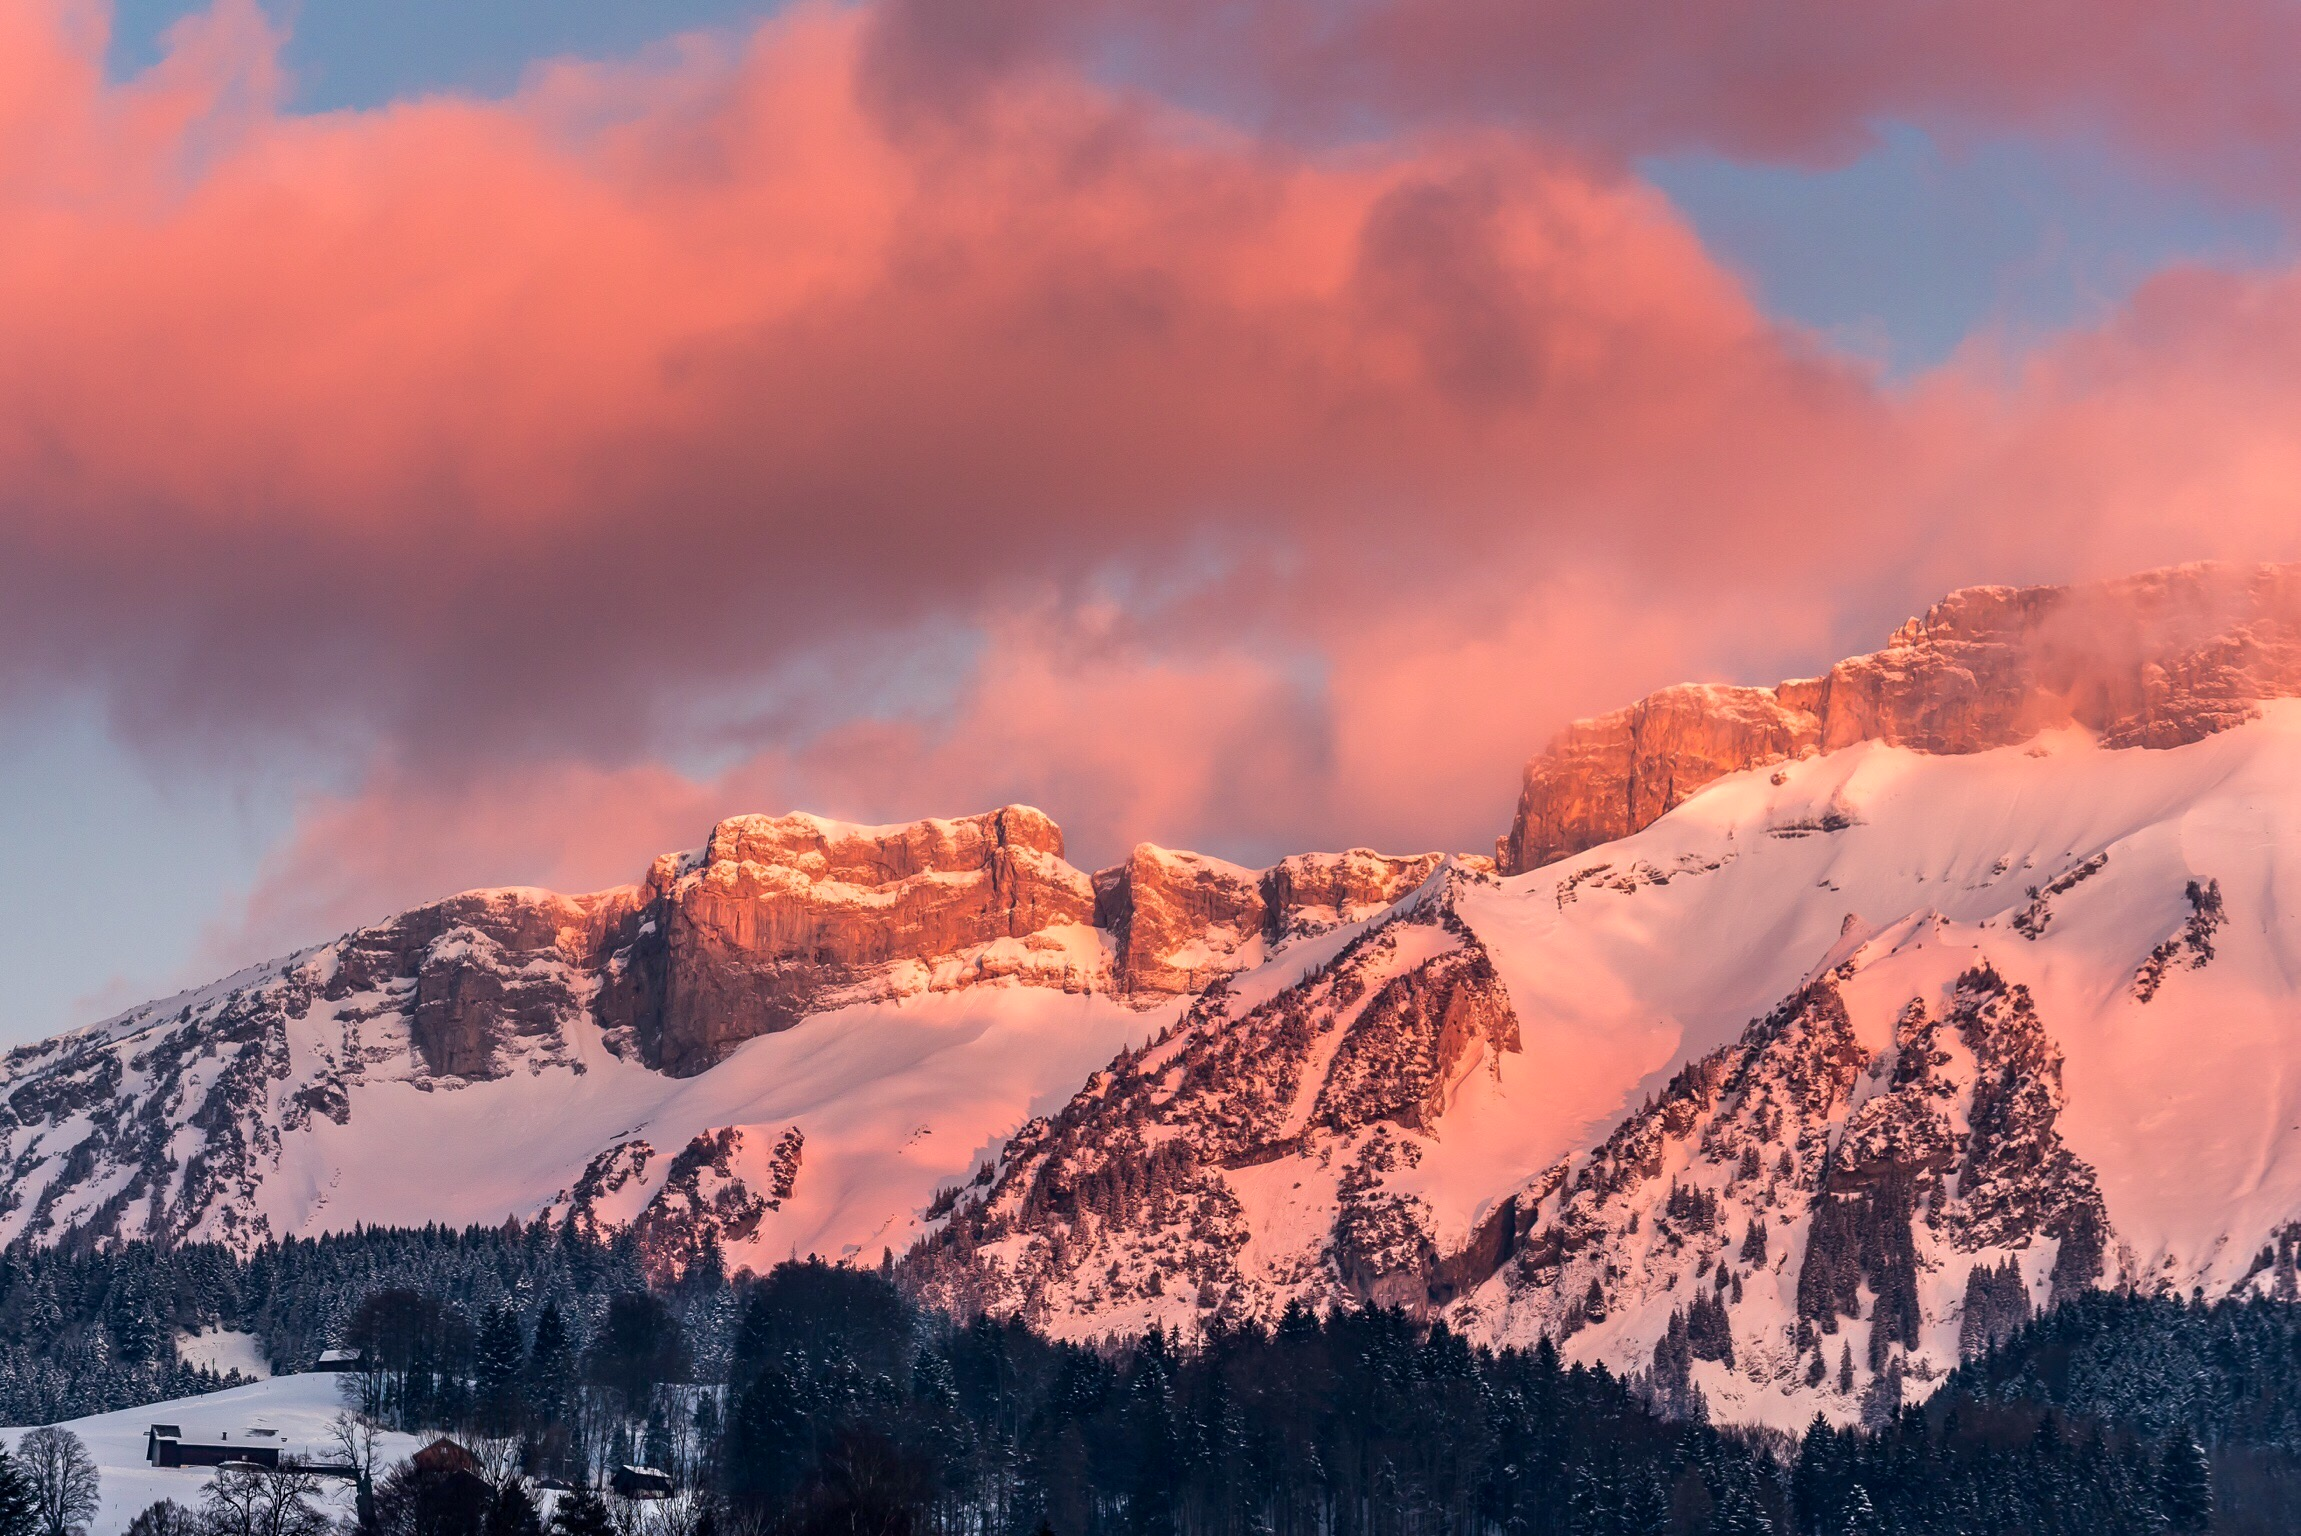 Spectacular sunrise after the snowfall...